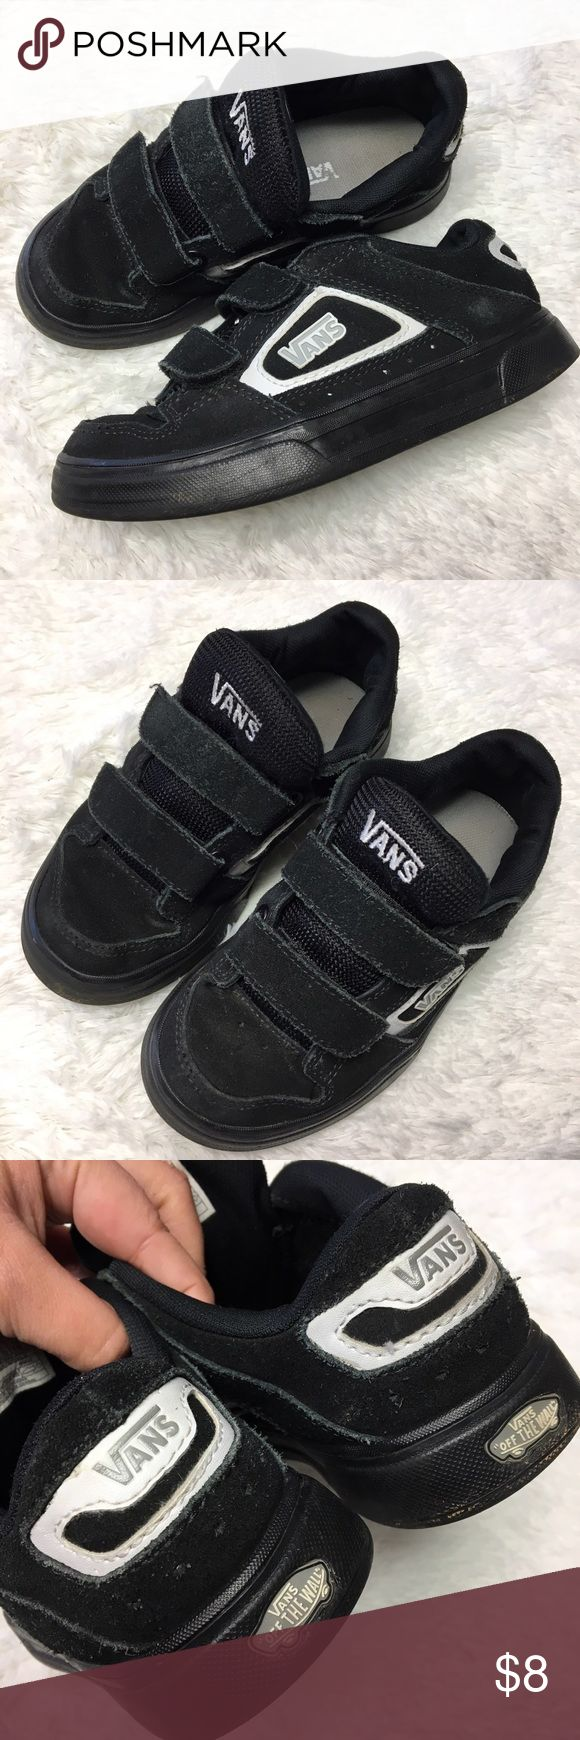 Vans Velcro™ Strap Skate Board Shoes Vans youth boys Size 1.5 Velcro strap black and white skateboard shoes. Good used condition with lots of wear left in them.              💎Price is Firm💎     ⭐️15% Off All Bundles ⭐️     💞💞💞💞💞💞💞💞💞💞 Vans Shoes Sneakers